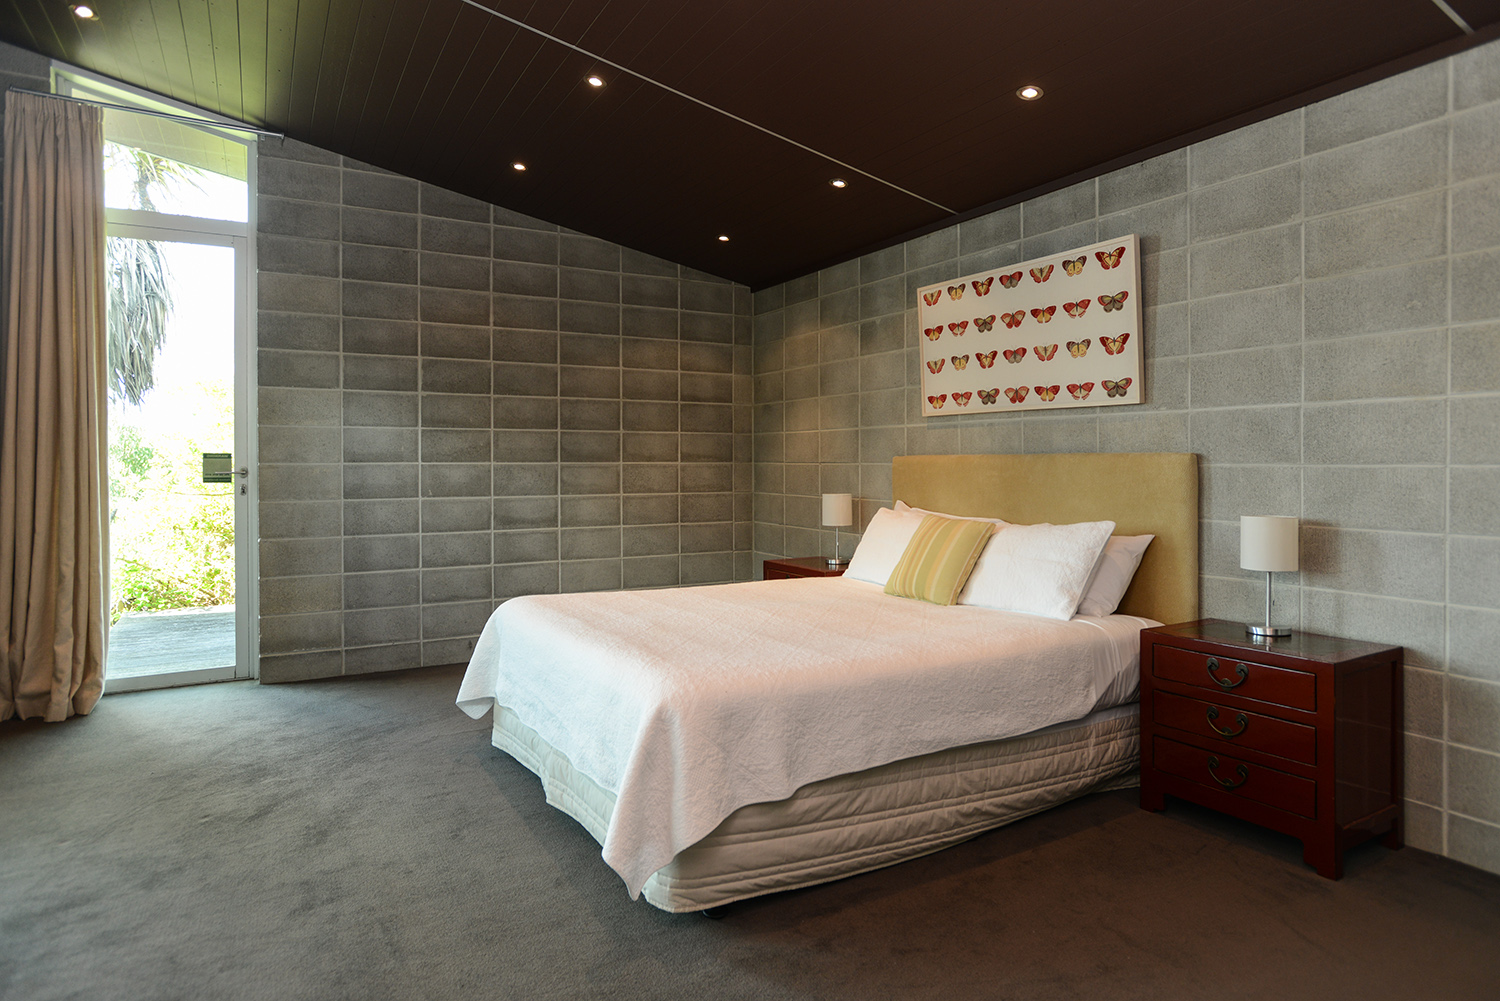 EDGECLIFF Accommodation - Bedroom 1